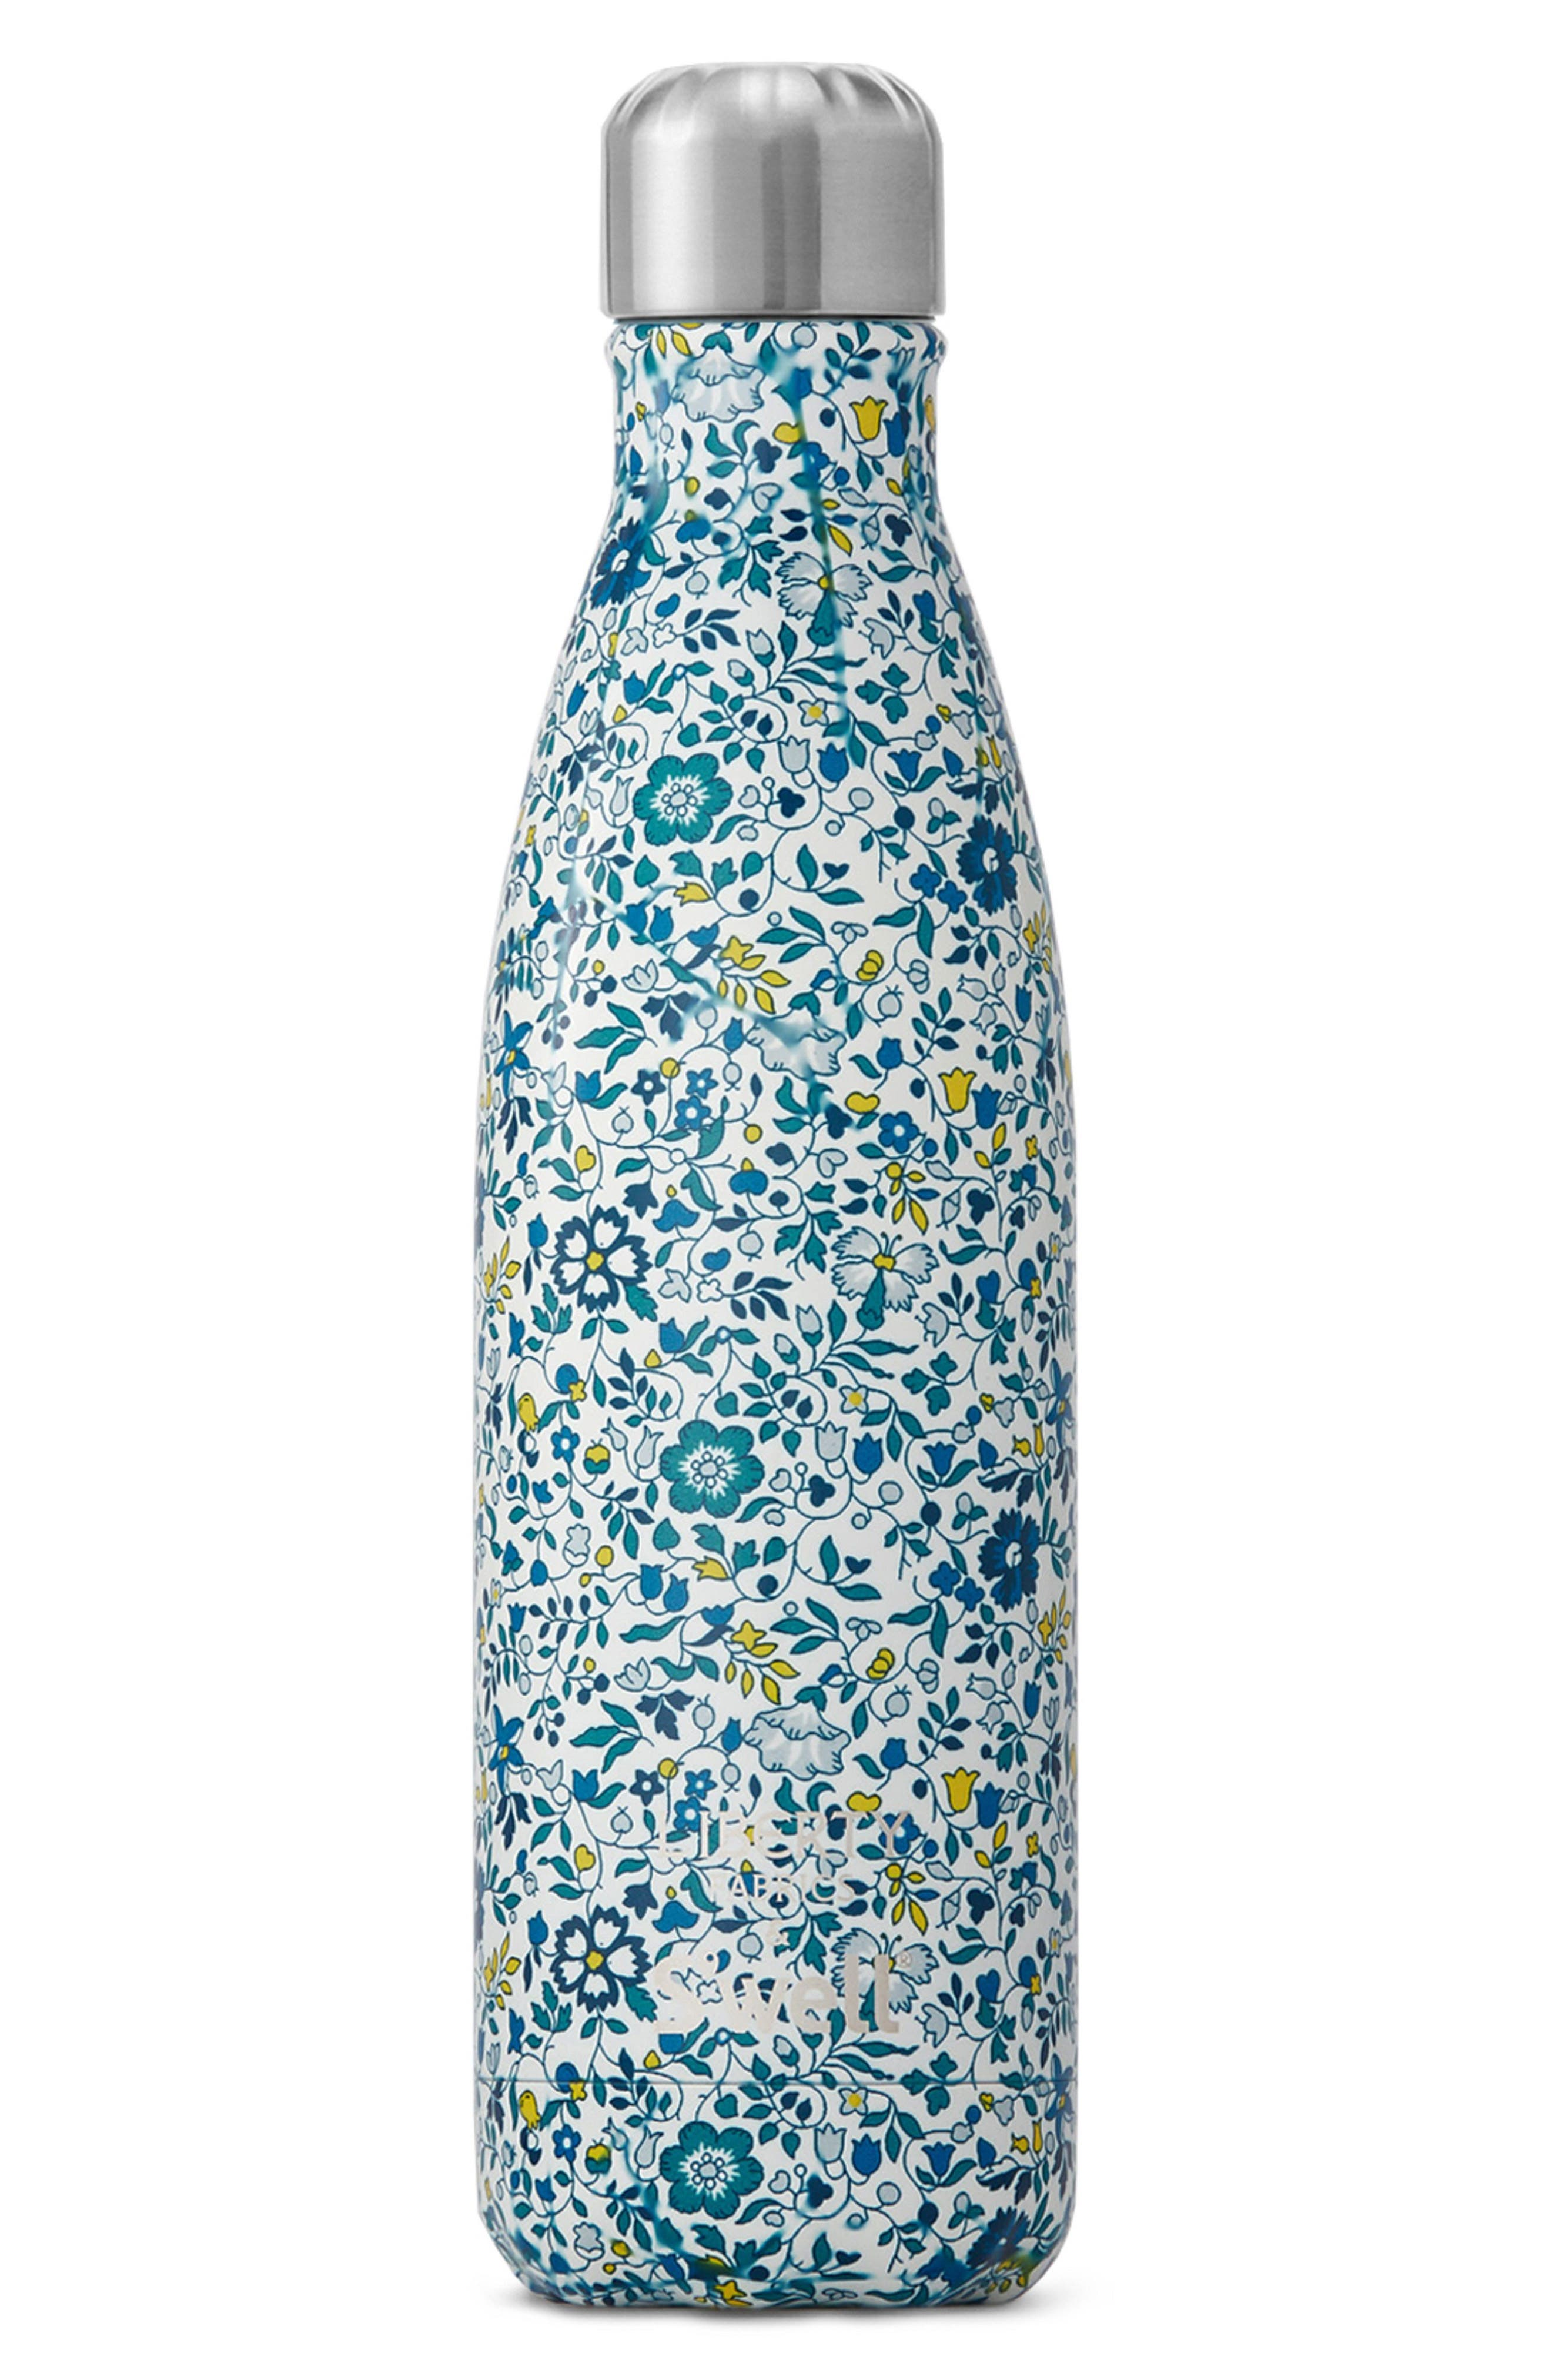 Liberty Fabrics Katie and Millie Stainless Steel Water Bottle,                             Main thumbnail 1, color,                             412